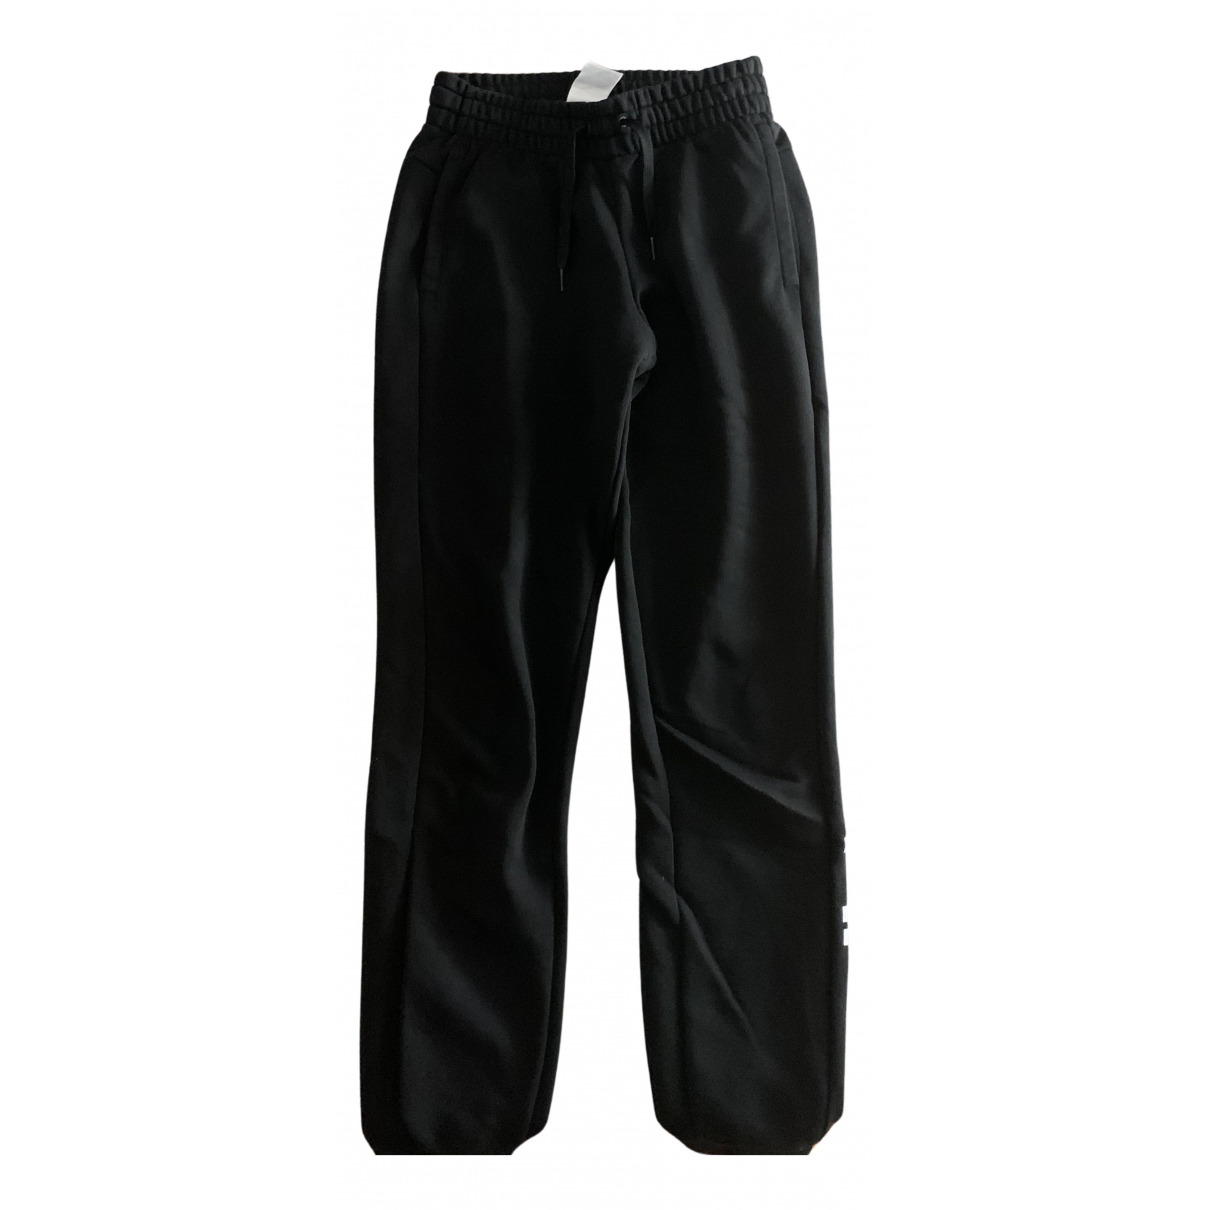 Adidas N Black Cotton Trousers for Women XS International